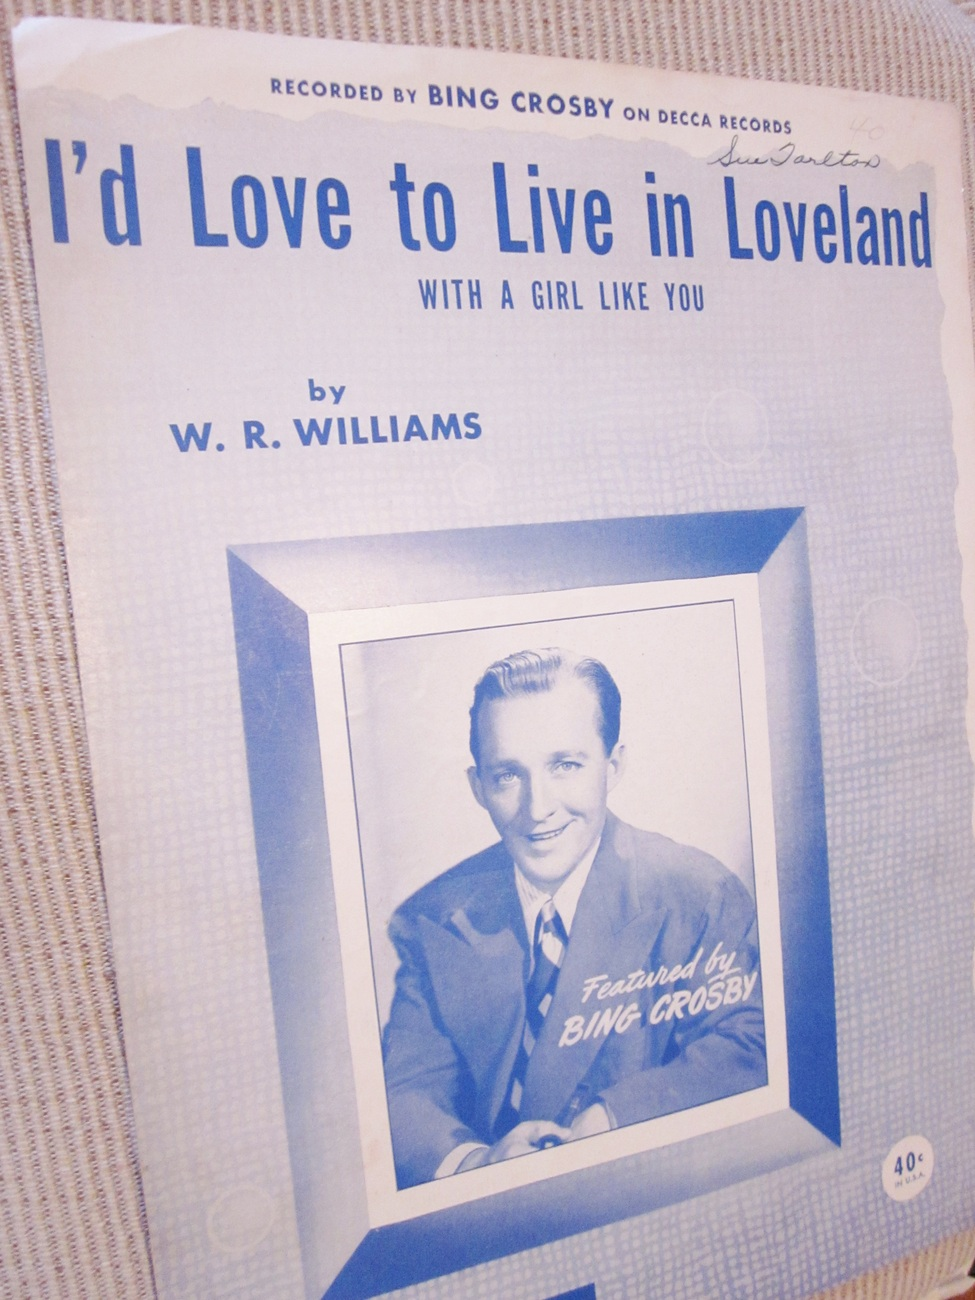 Vintage Sheet Music I'd Love To Live In Loveland by W. R Williams 1945 - Crosby